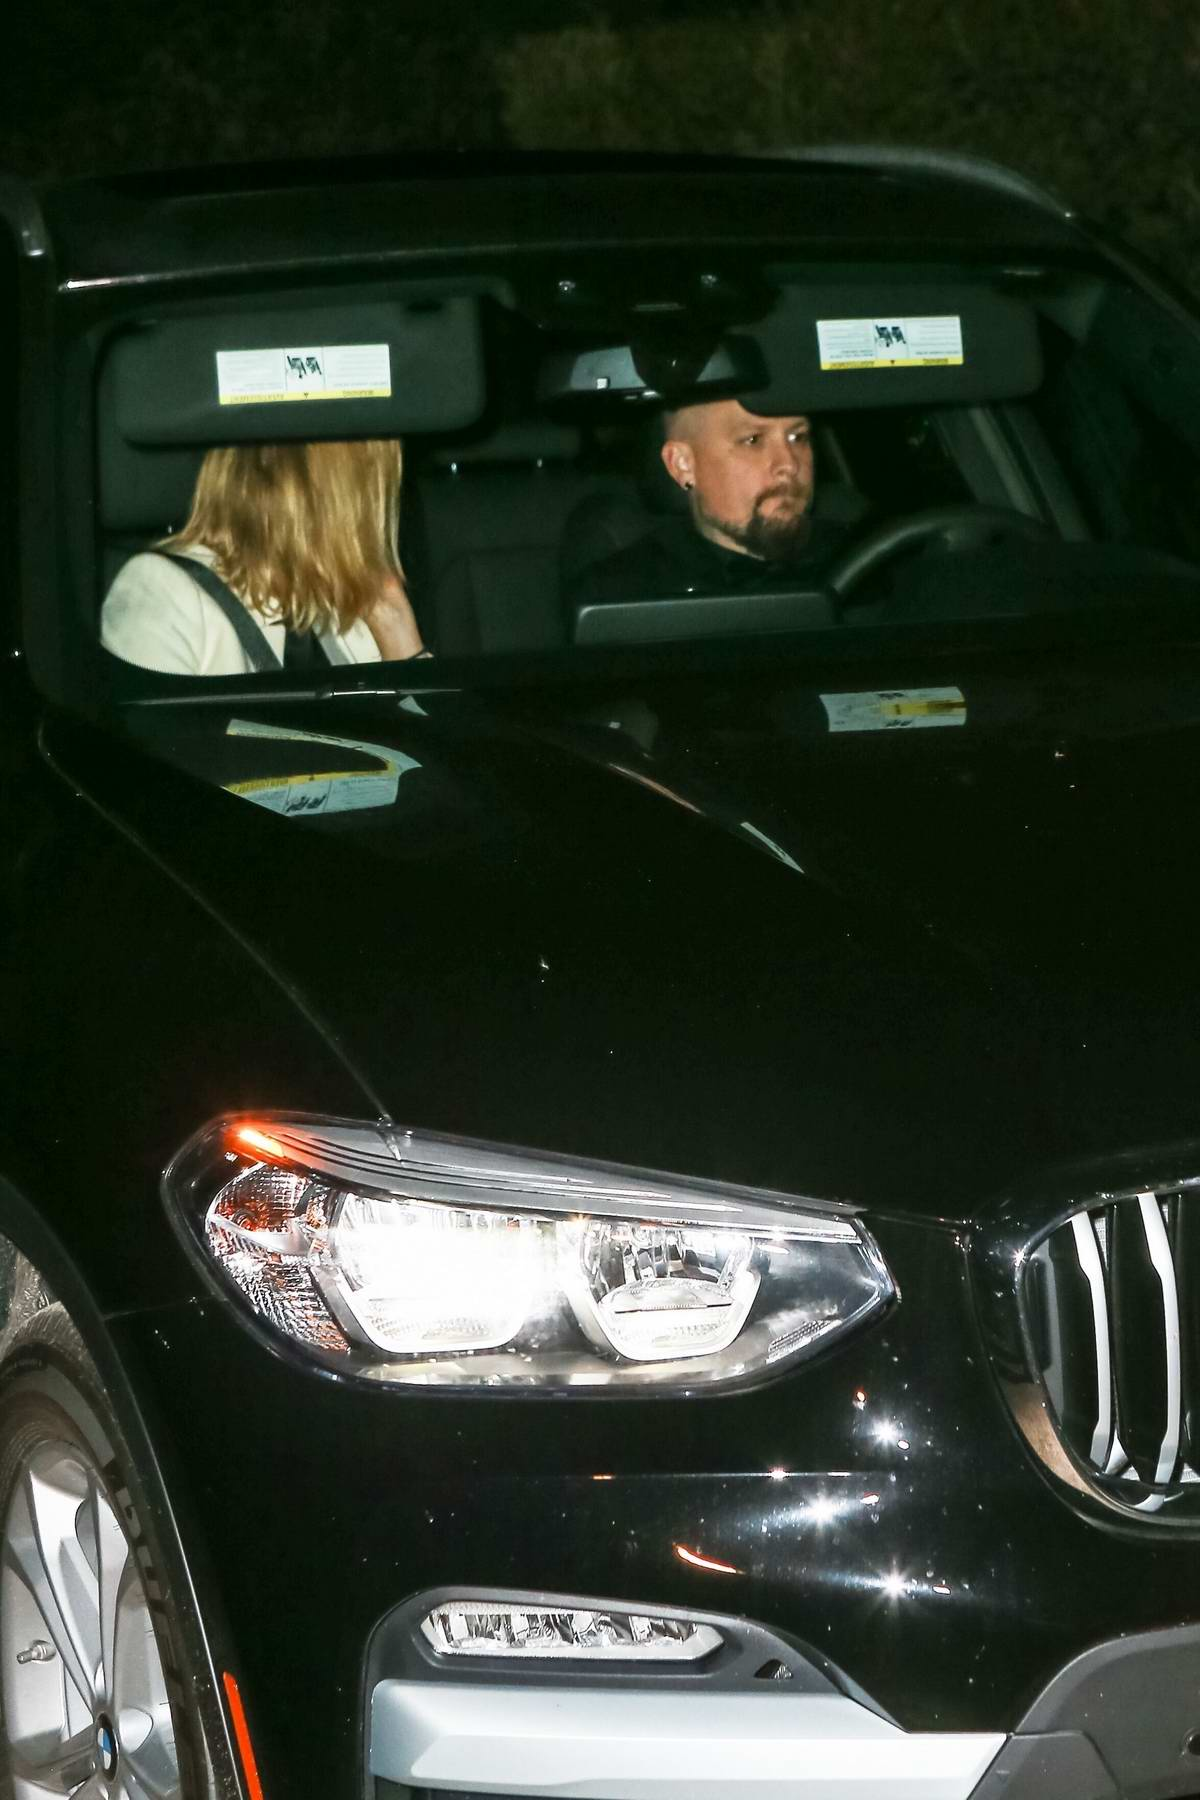 Cameron Diaz and Benji Madden spotted as they leave Gwyneth Paltrow's wedding party in New York